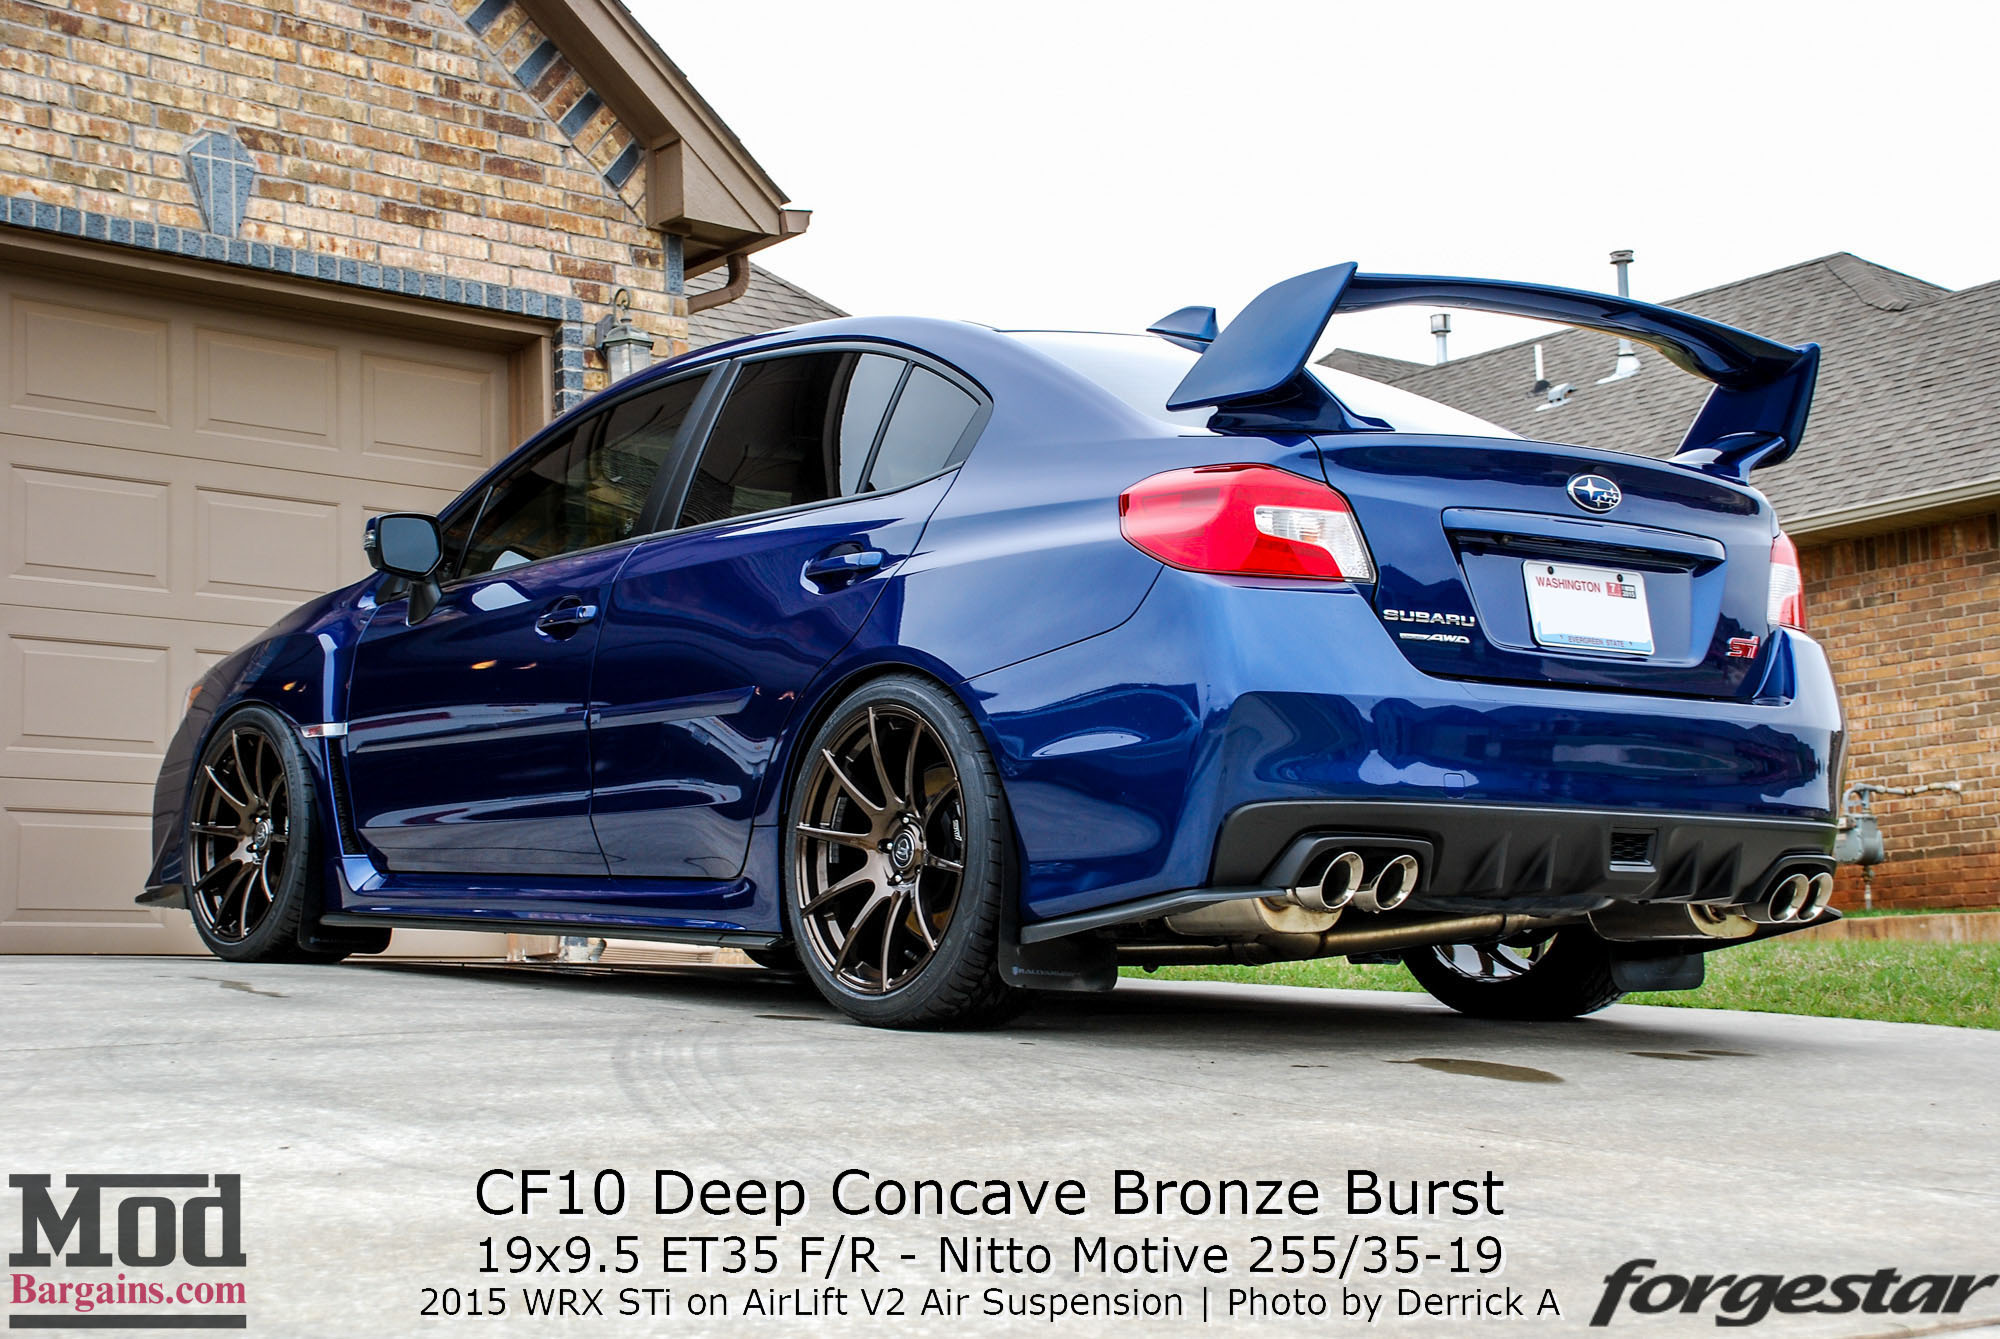 2017 Sti Lowered >> Quick Snap: 2015 STi on Forgestar CF10 Wheels